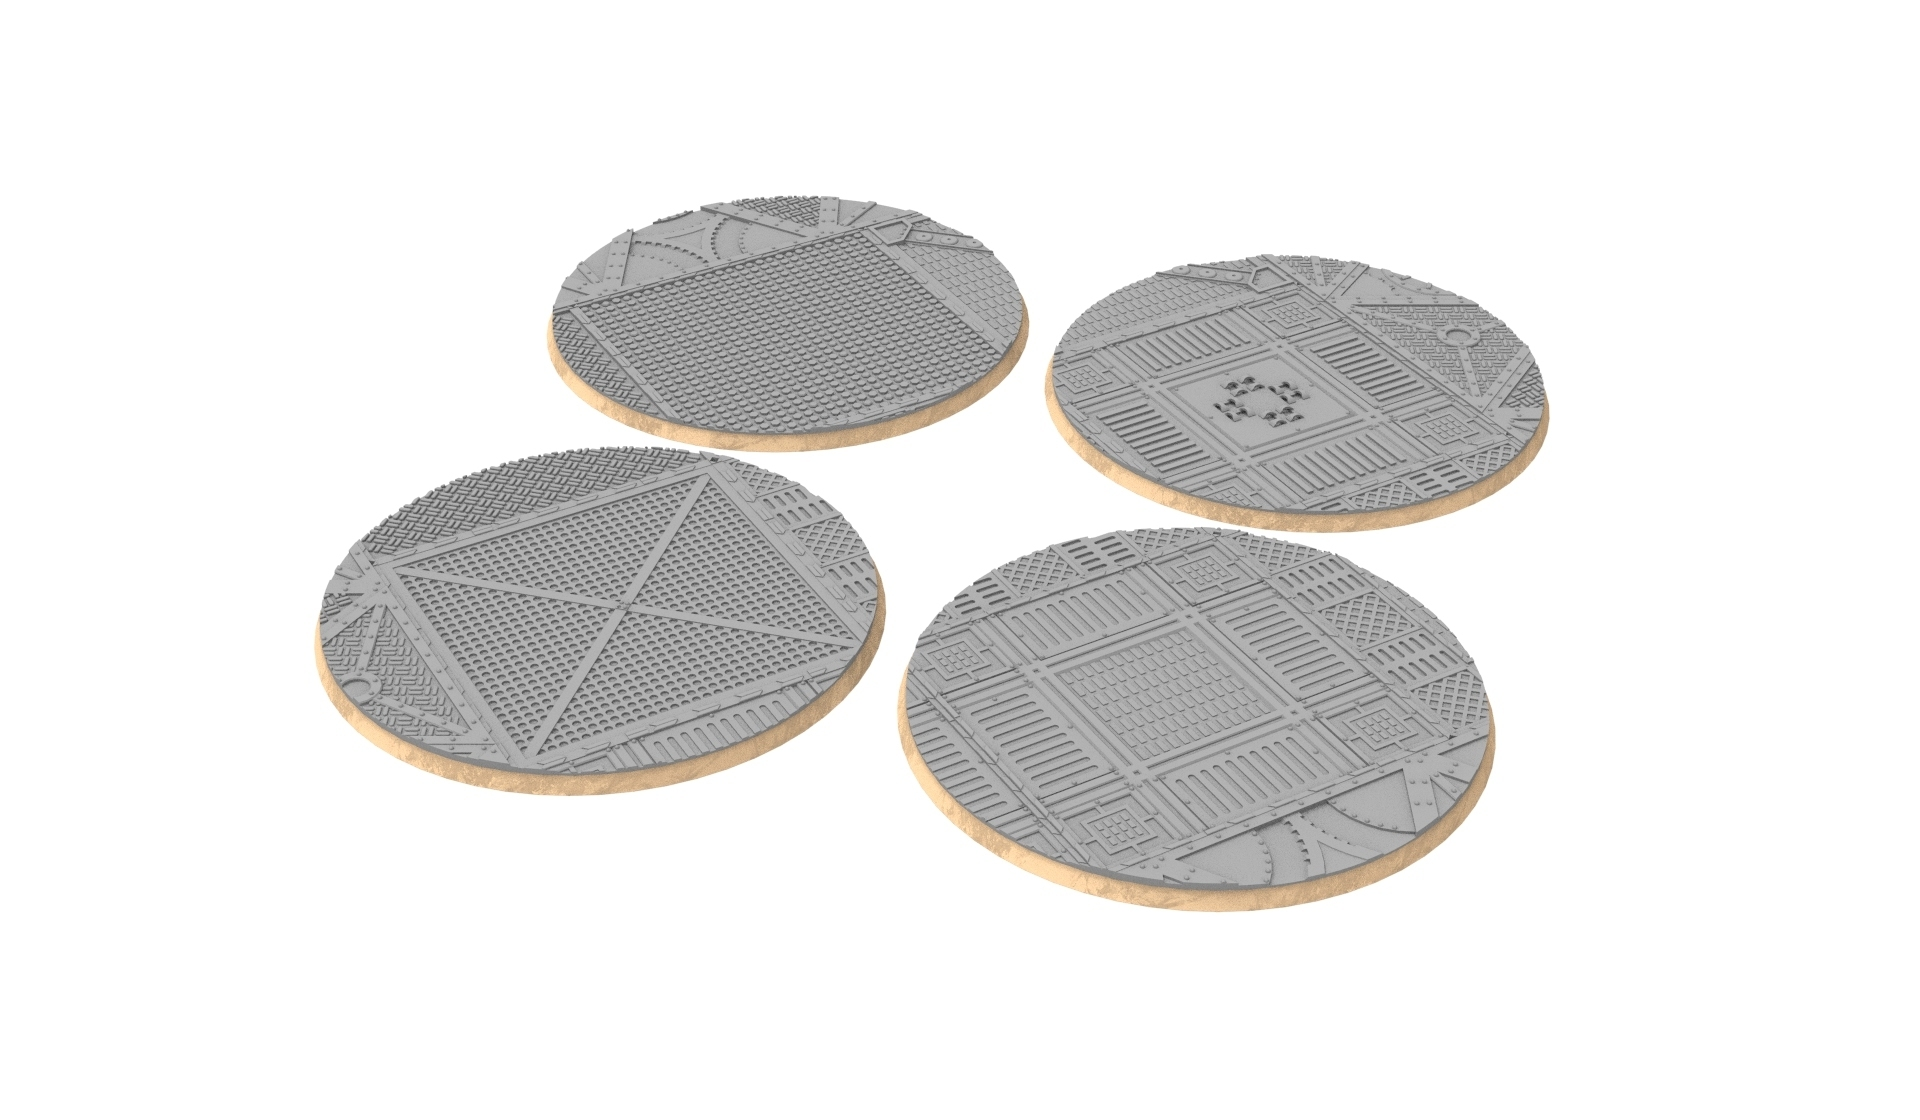 untitled.328.jpg Download STL file x1000 Round, oval, square, rectangular, hexagonal, industrial textured bases • 3D print design, Alario